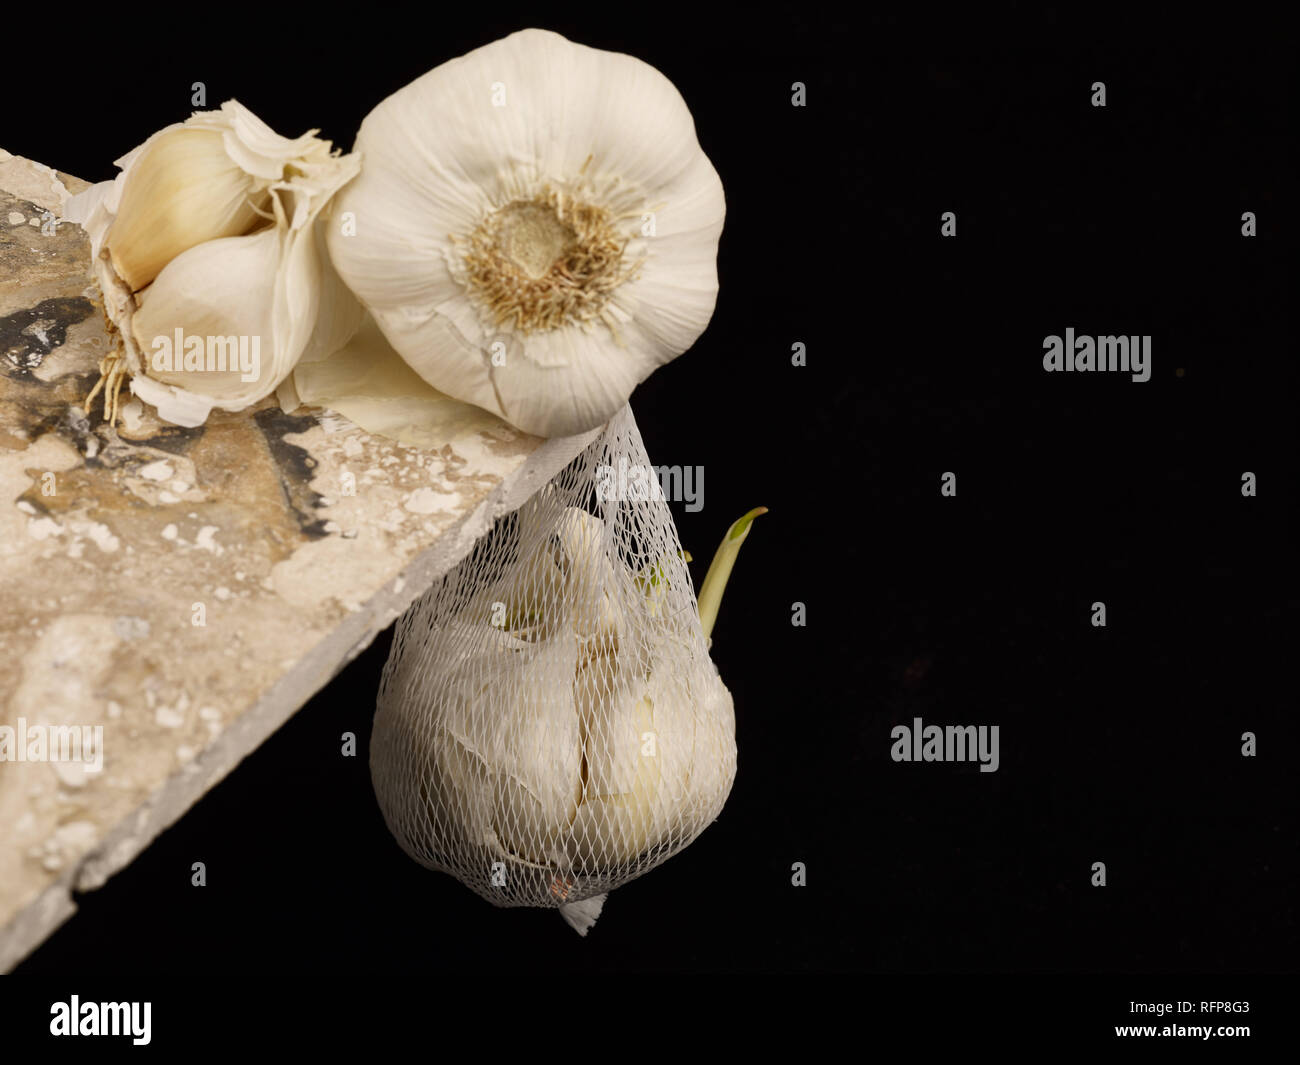 Garlic clove against a black background, vegetable food photograph Stock Photo